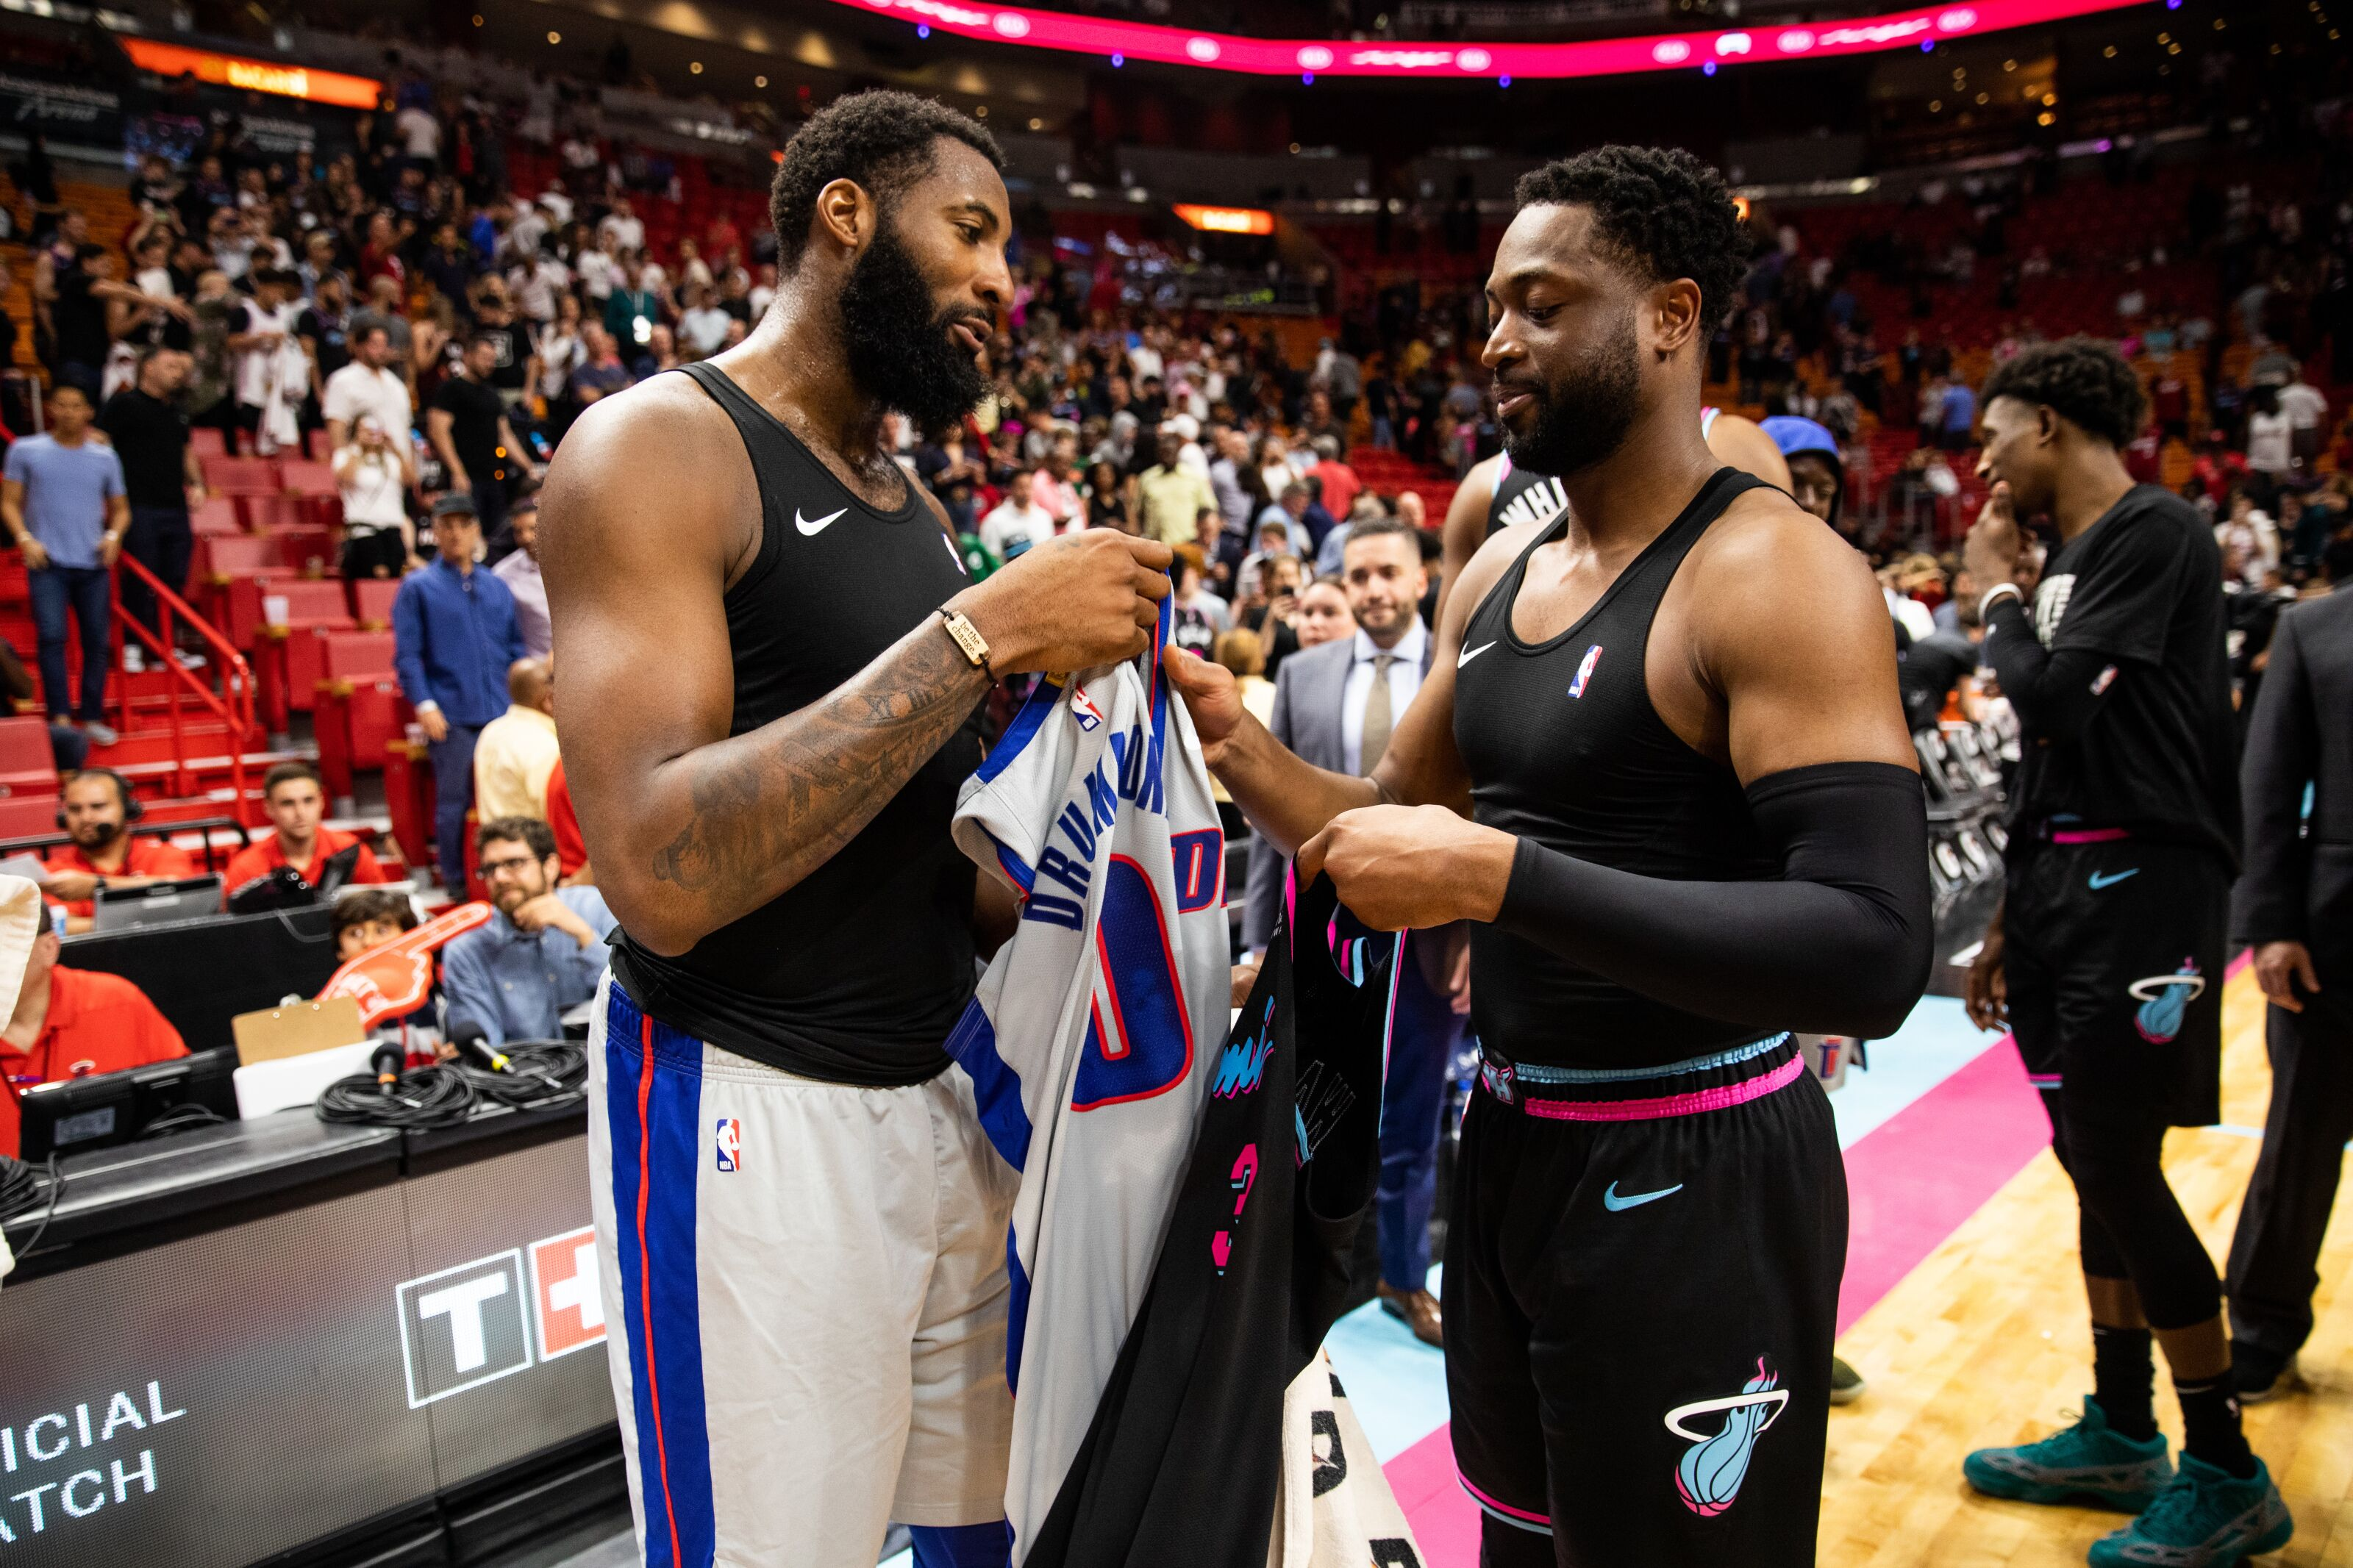 Miami Heat: What to expect from the streaking Detroit Pistons